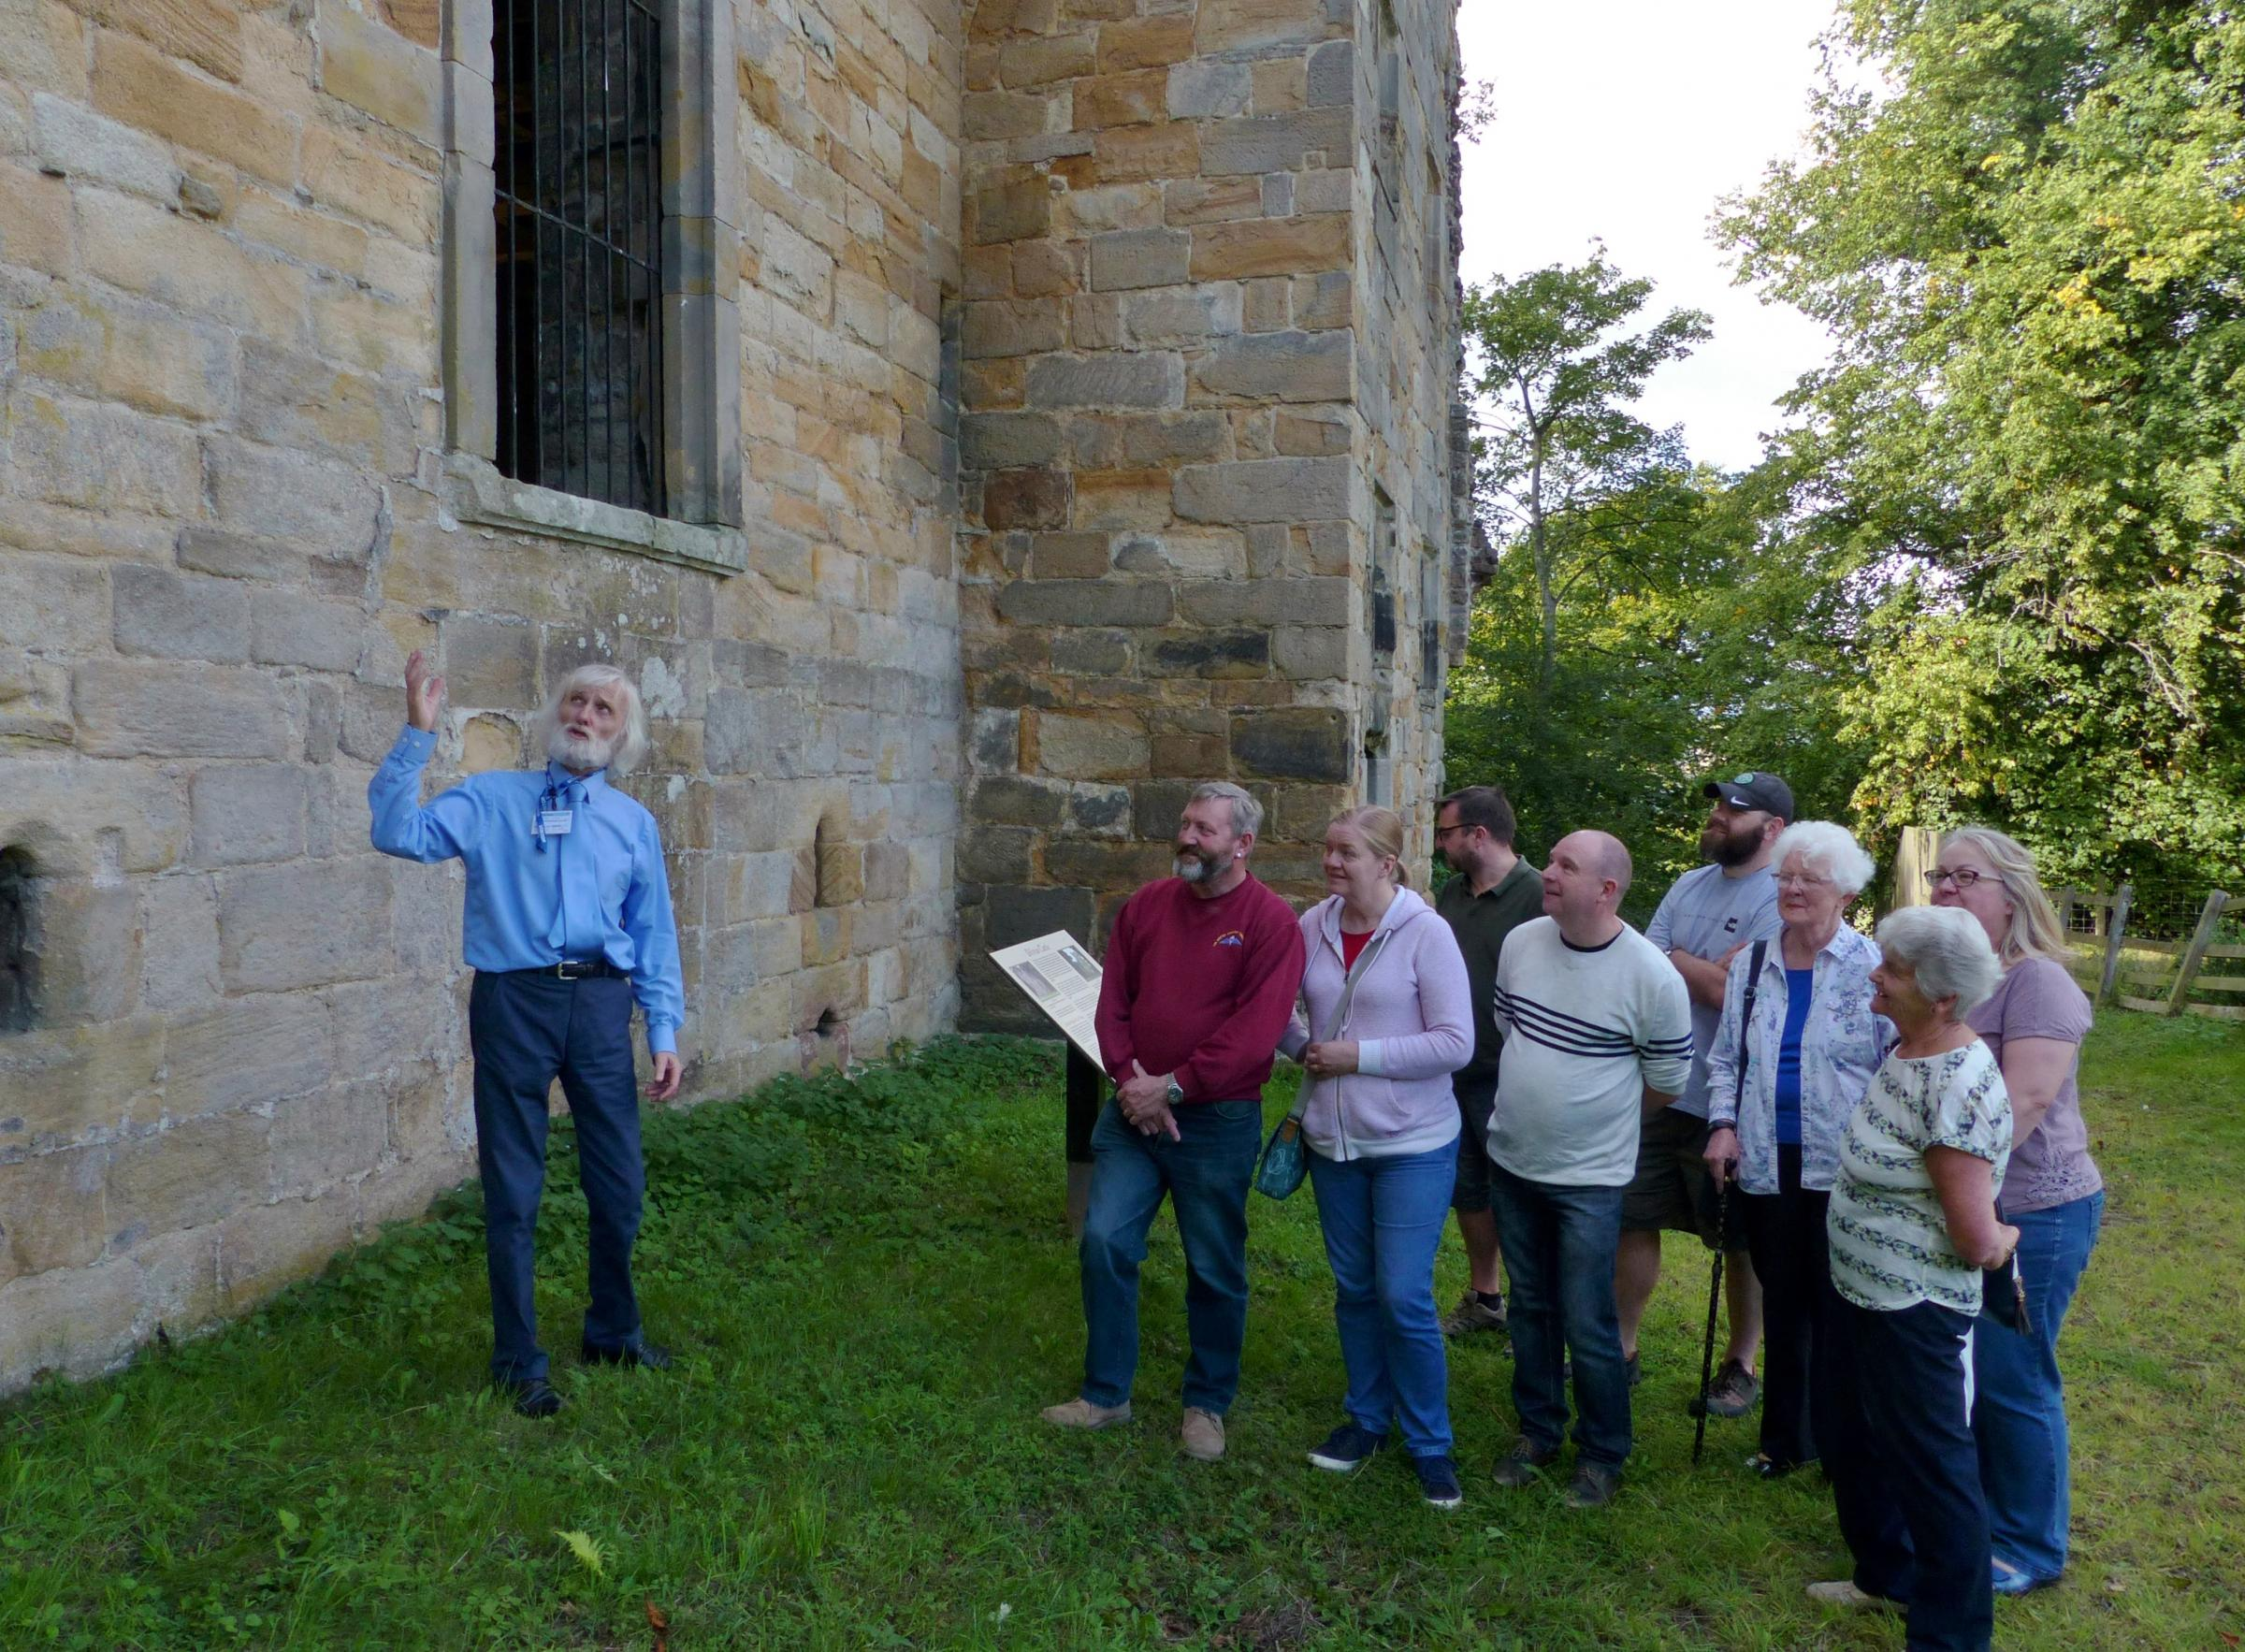 John Nicholls MBE show visitors around Dilston Castle and Chapel.